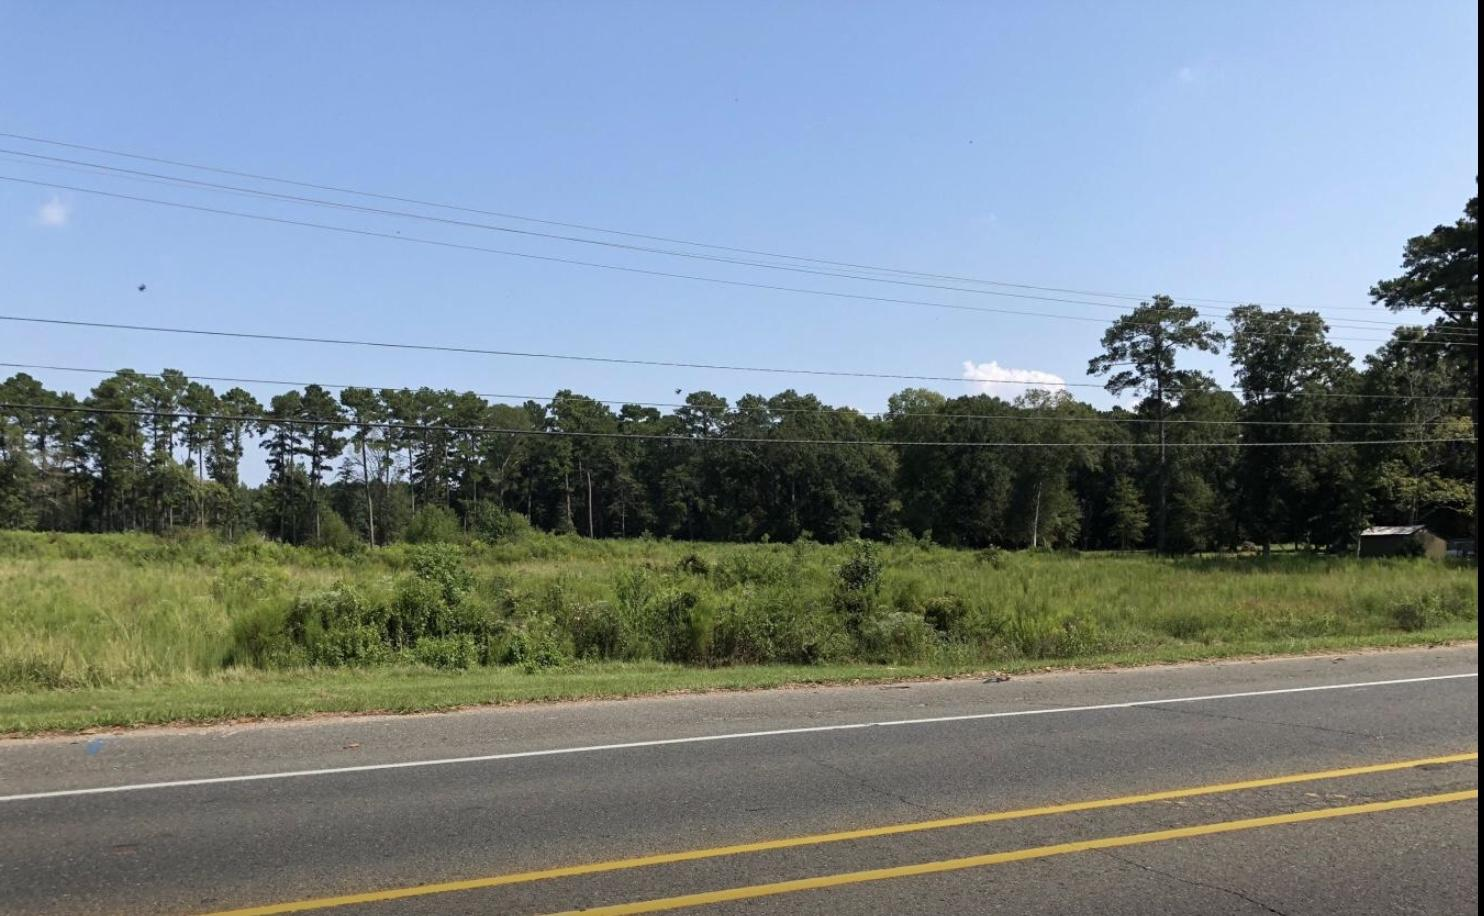 DeRidder land for sale,  US-190, DeRidder LA - $149,900